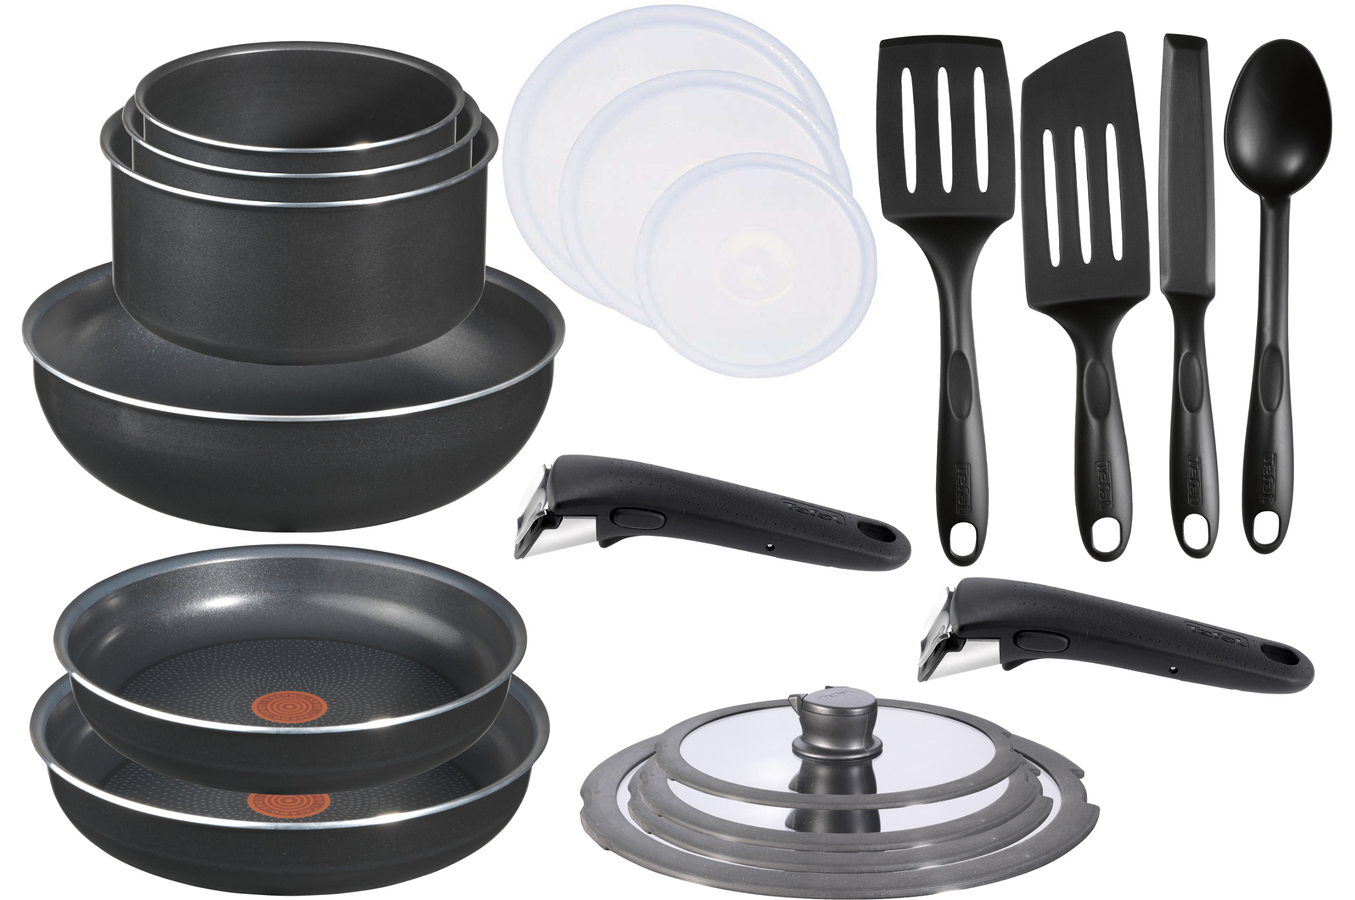 casserole tefal ingenio 5 ptfe 20 pieces l0361405 set. Black Bedroom Furniture Sets. Home Design Ideas